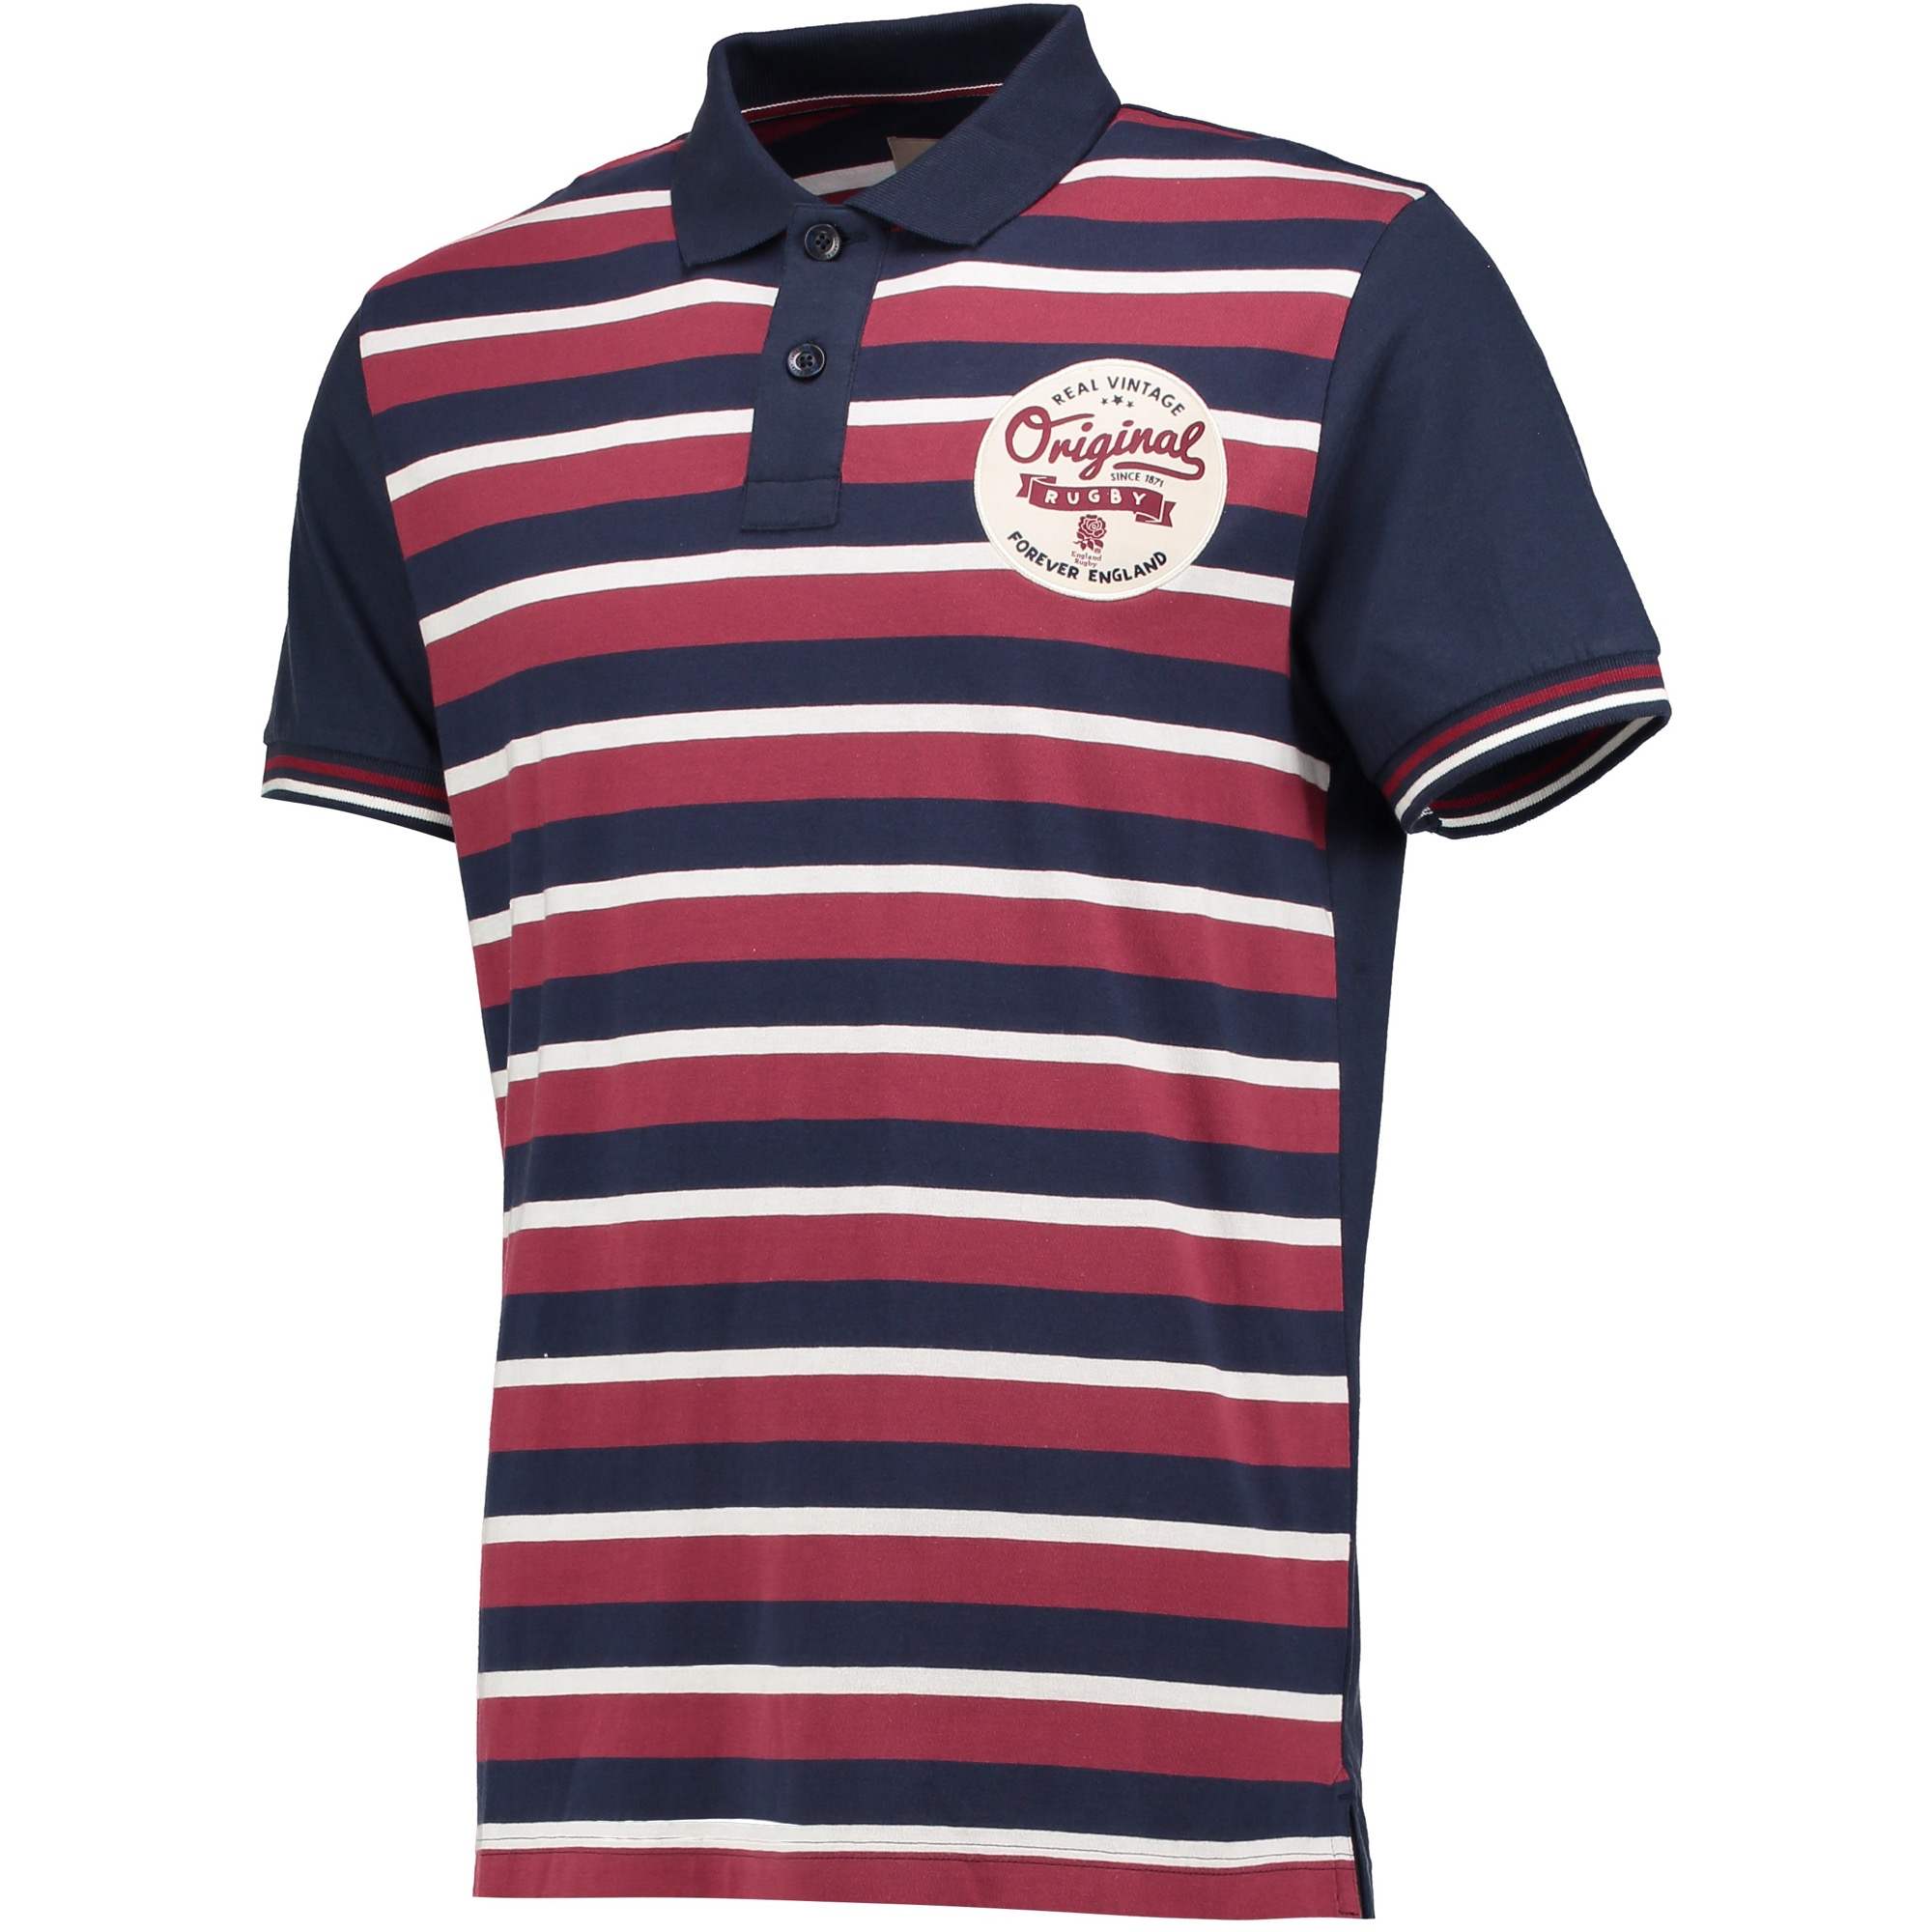 "Image of ""England Authentics Real Vintage Stripe Polo - Navy/Red"""